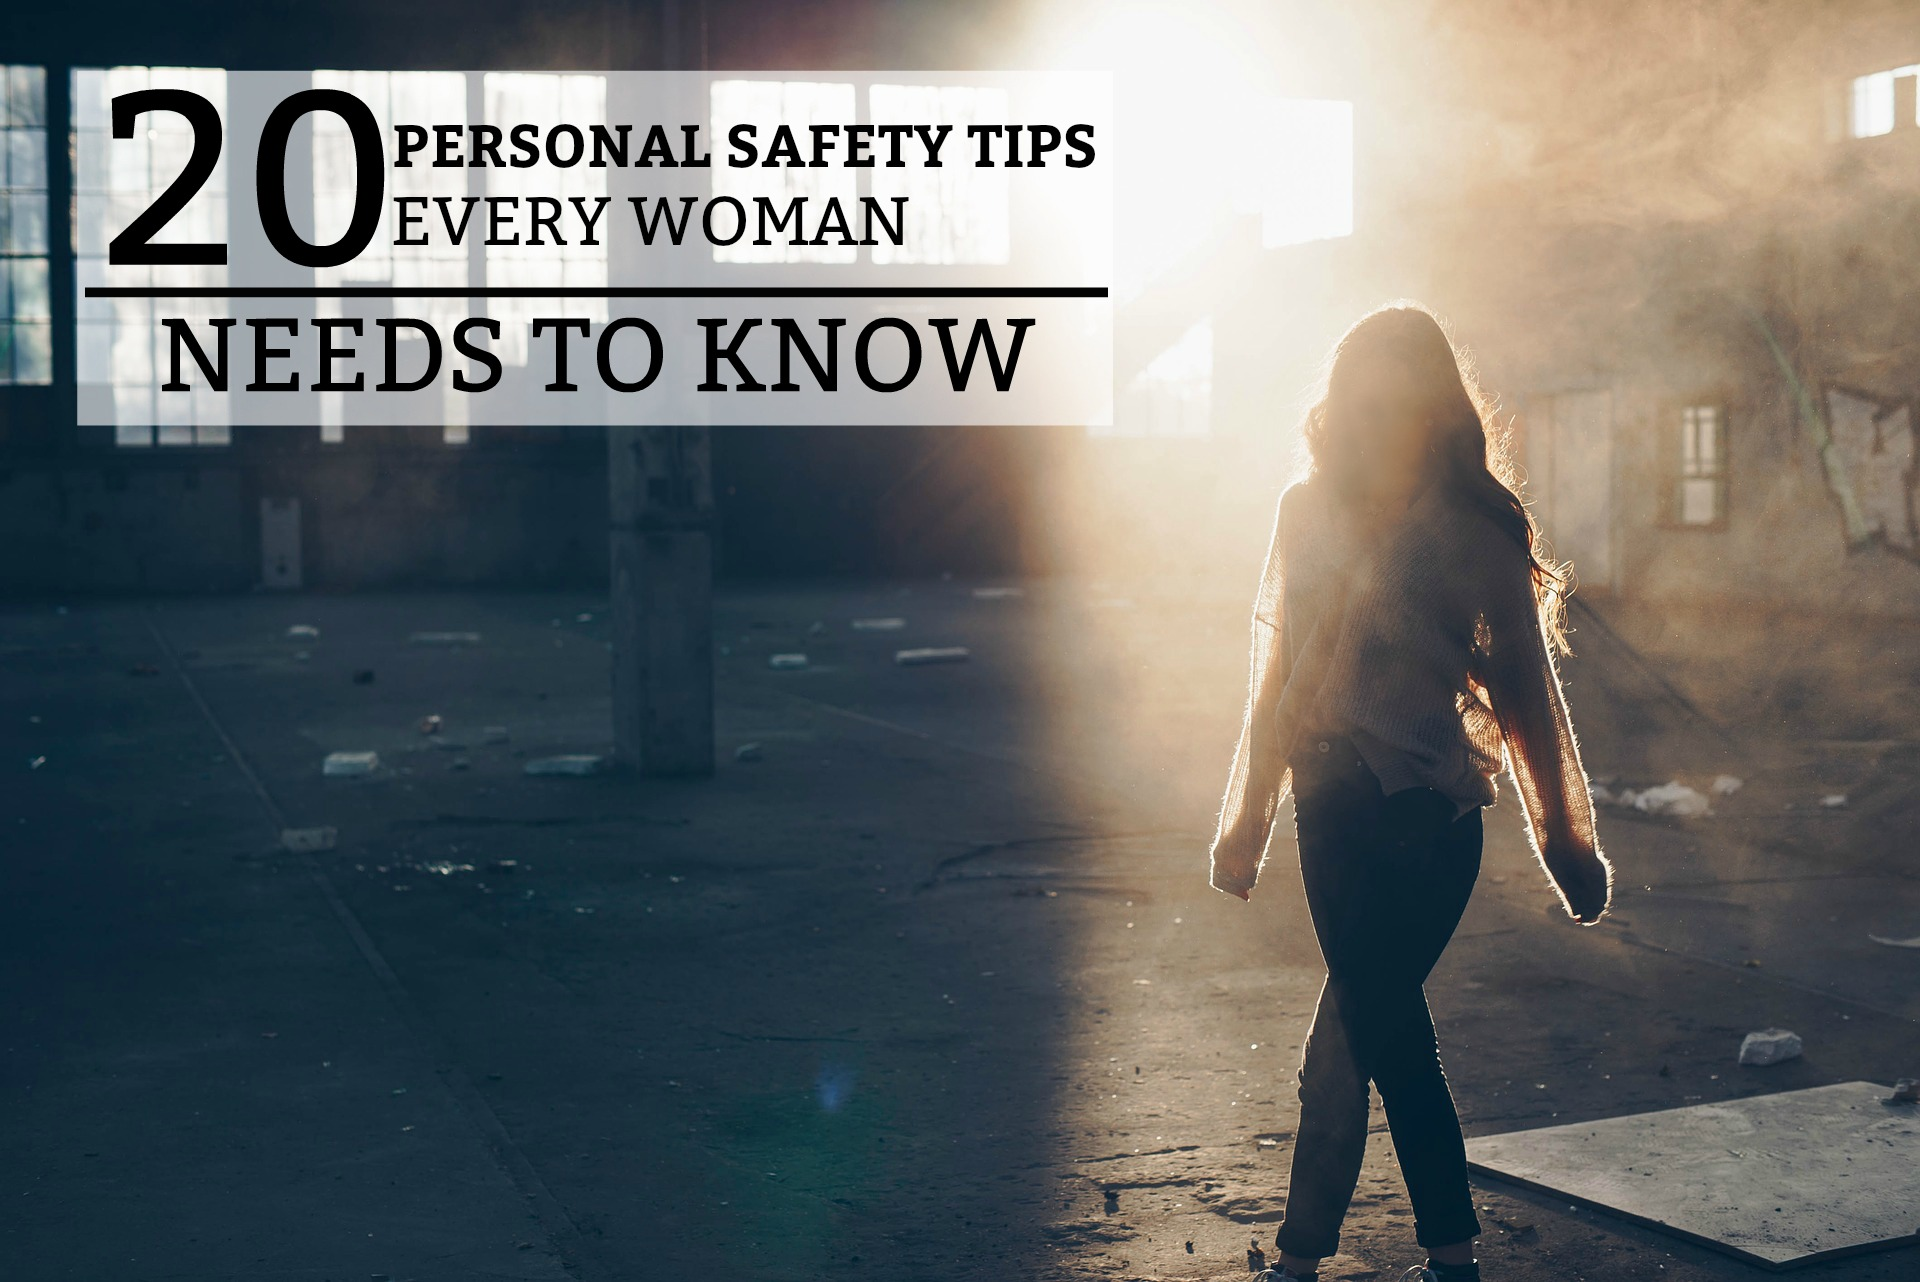 20 Personal Safety Tips Every Woman Needs to Know - a practical guide on how to stay safe in dangerous situations. www.tradingaverage.com